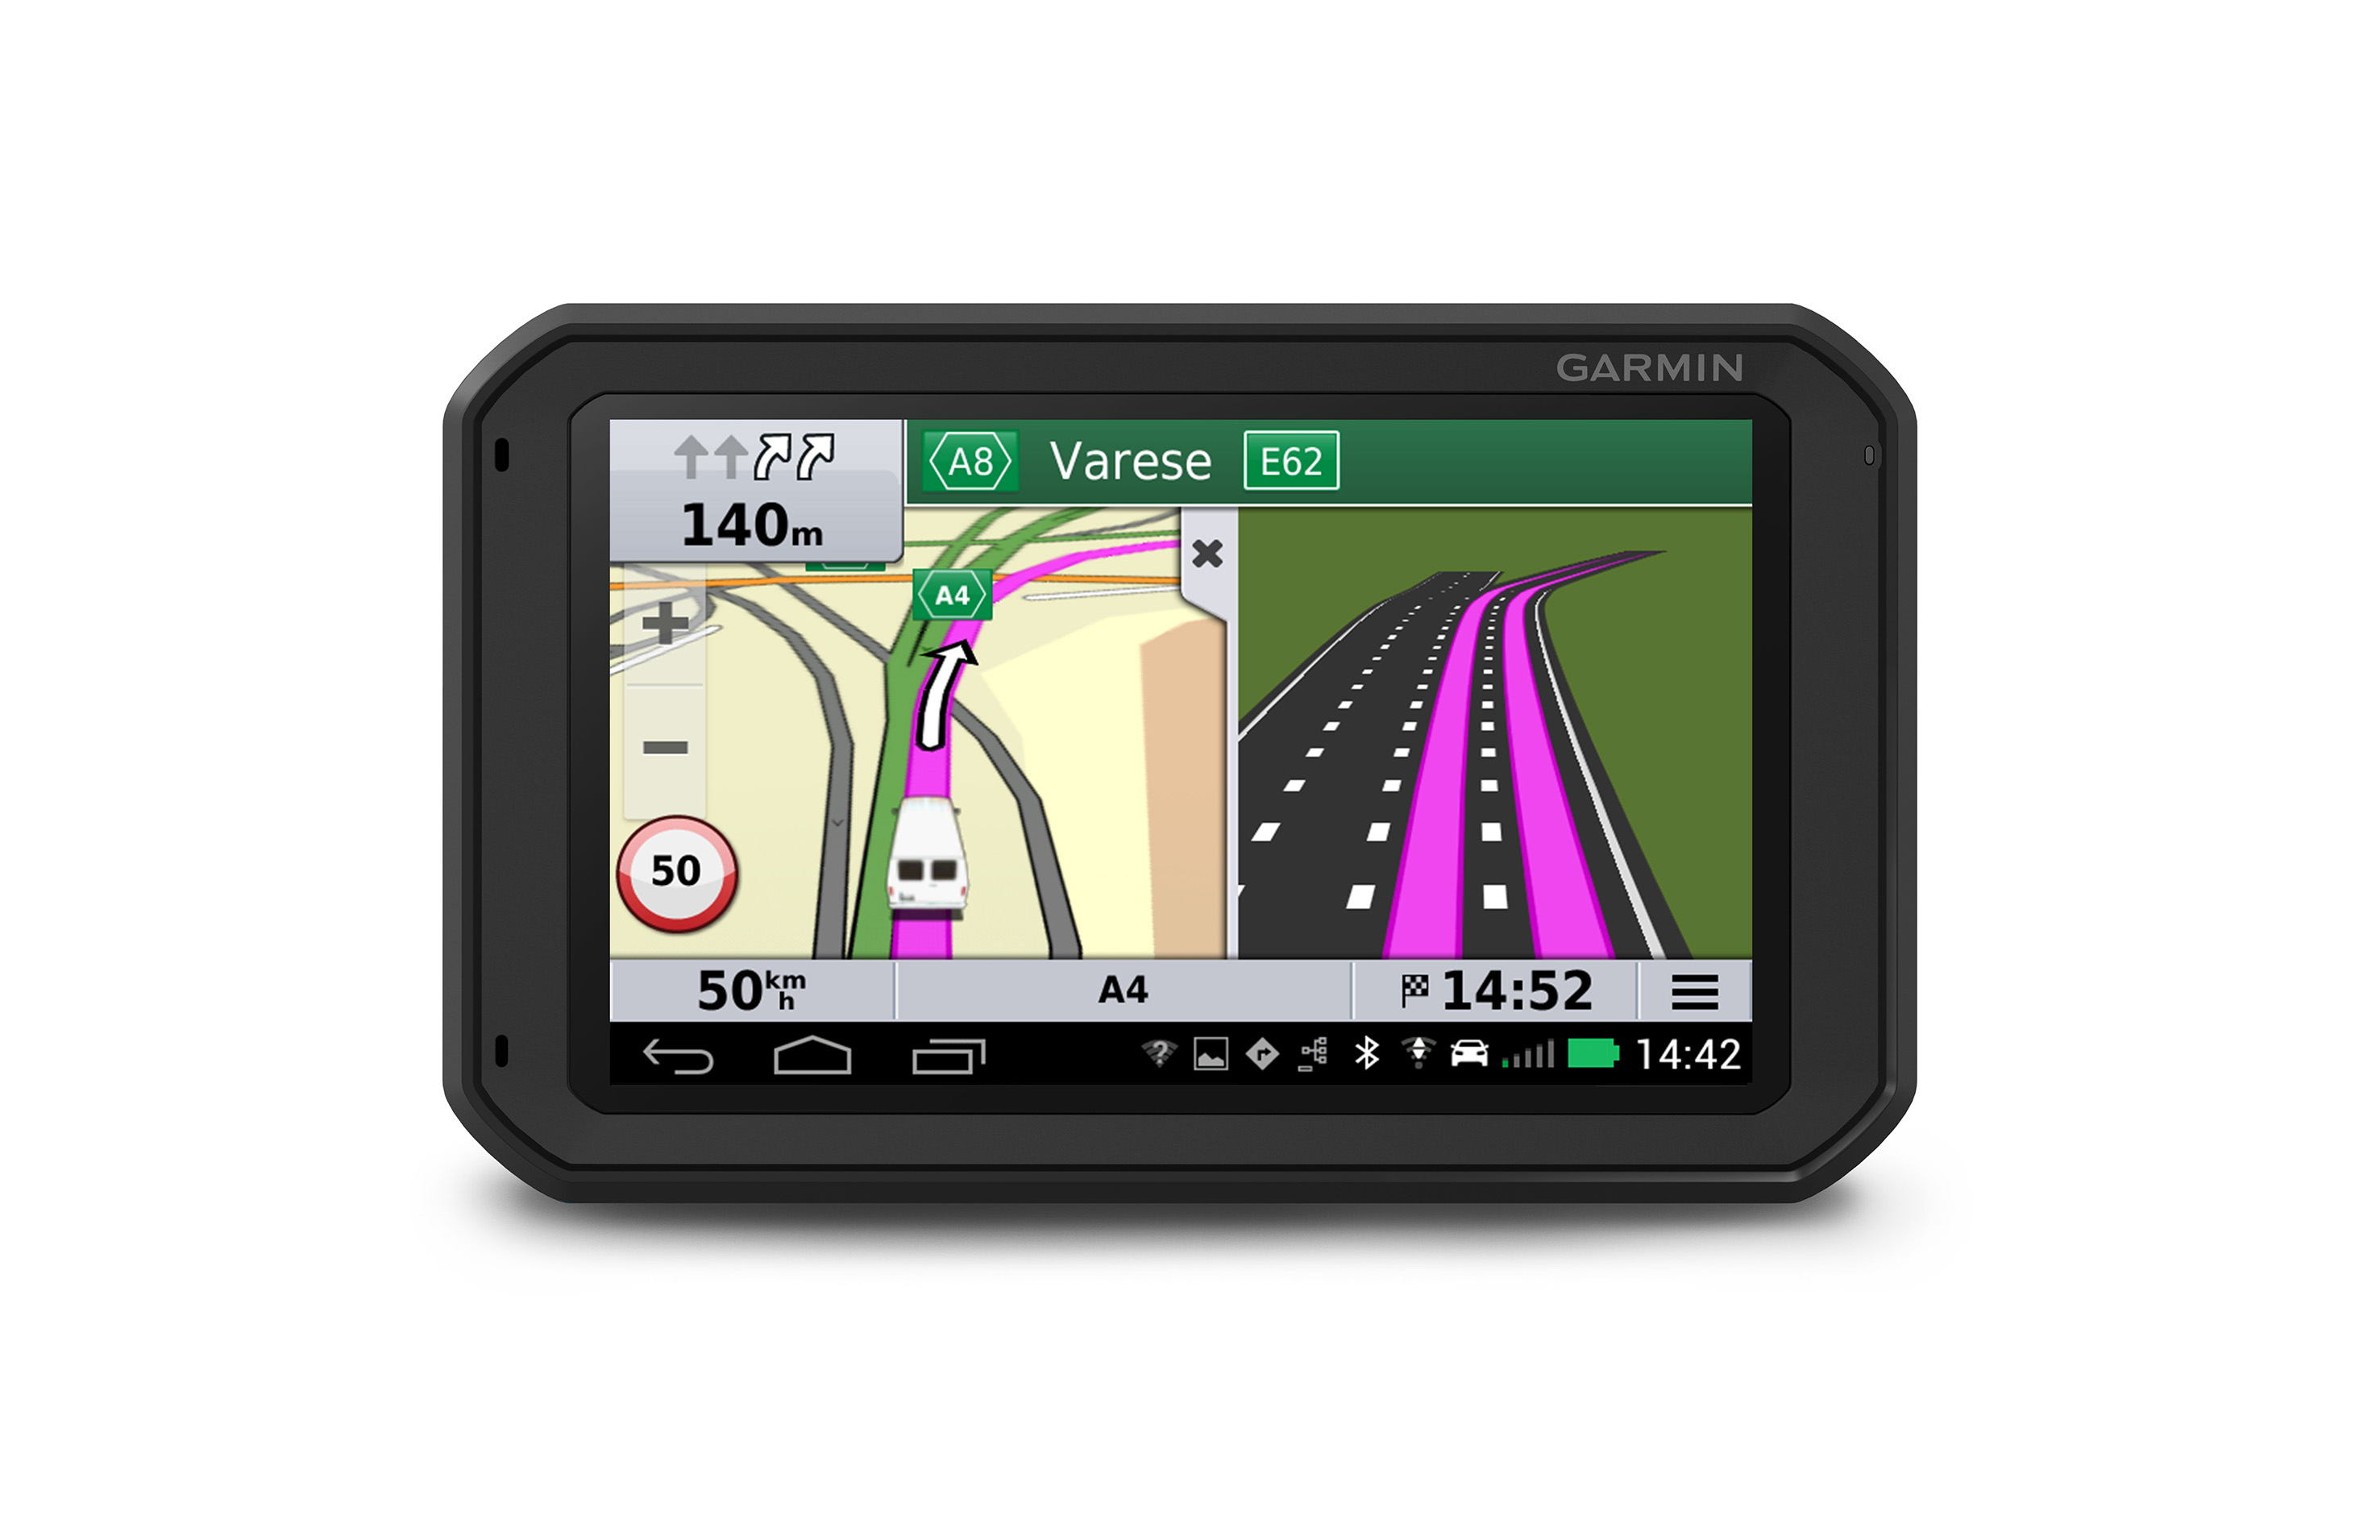 garmin al transpotec 2019